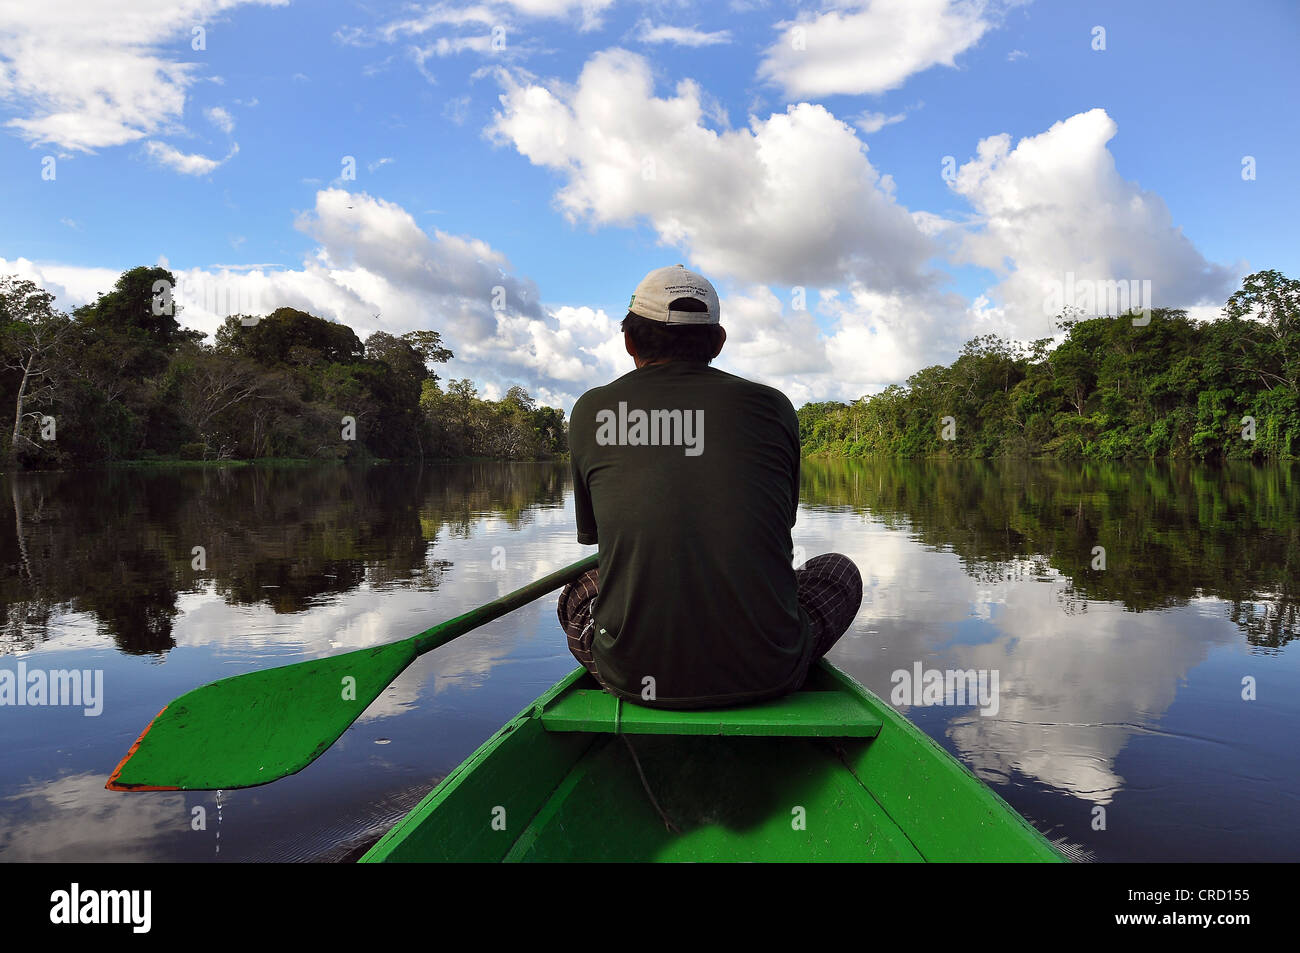 Man travelling by canoe on a tributary of the Amazon, Mamiraua Nature Reserve, Amazon, Brazil, South America - Stock Image